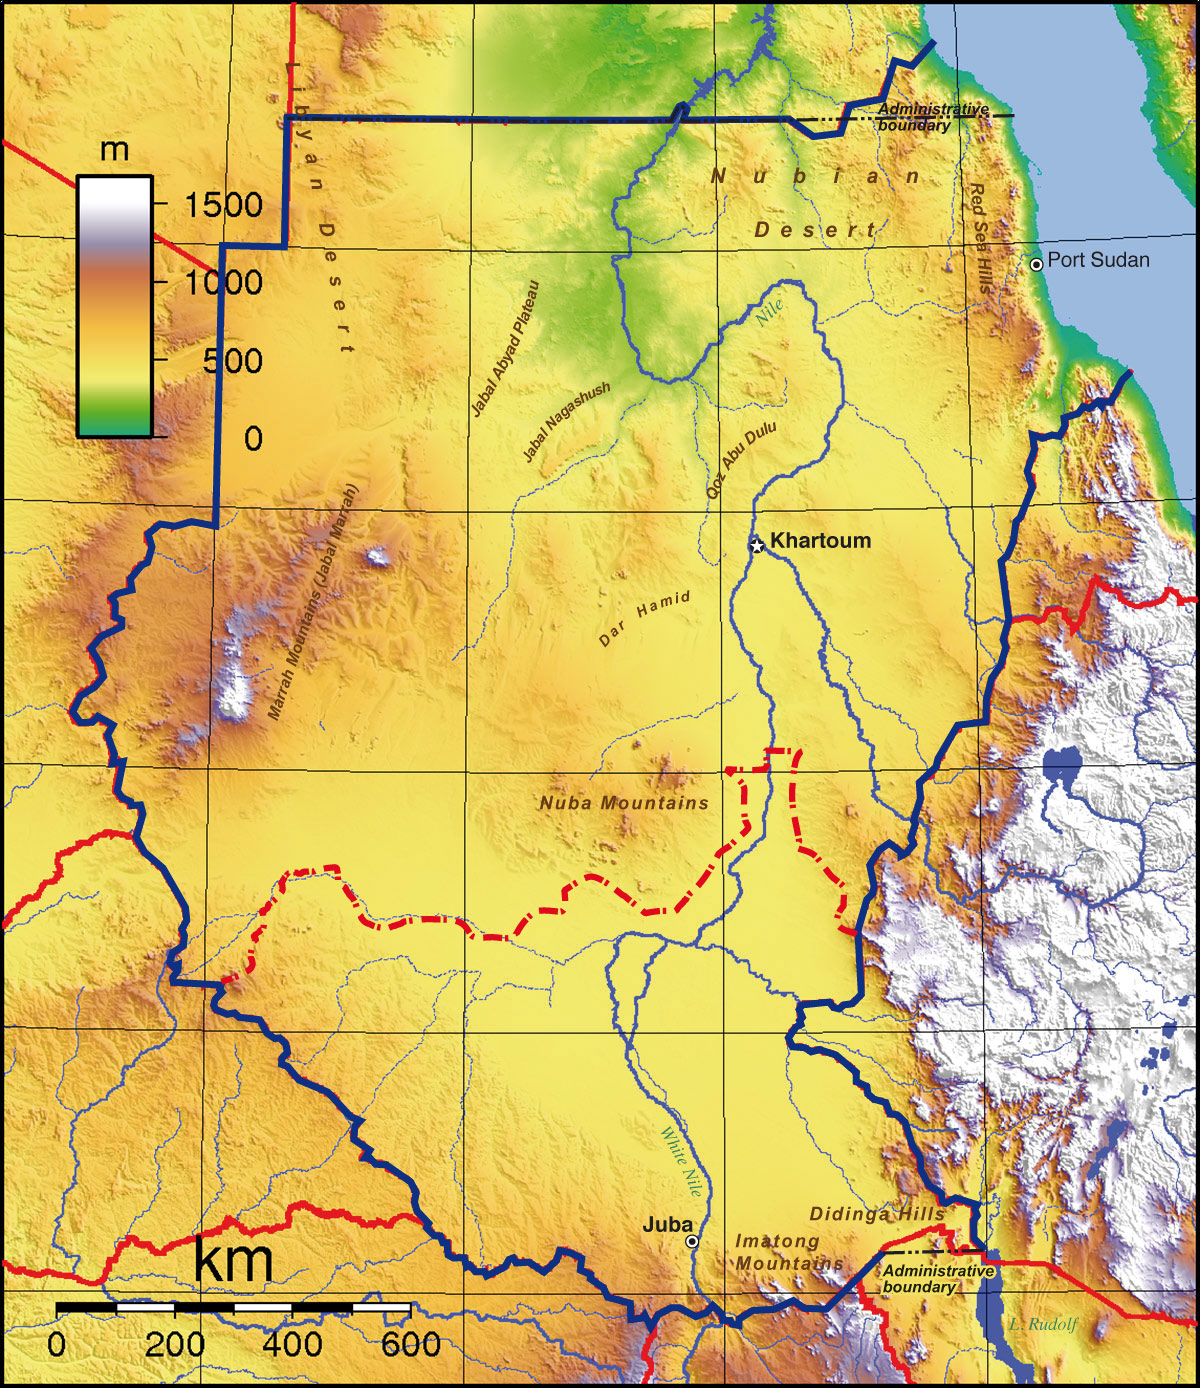 Topographic Map of Sudan - Nations Online Project